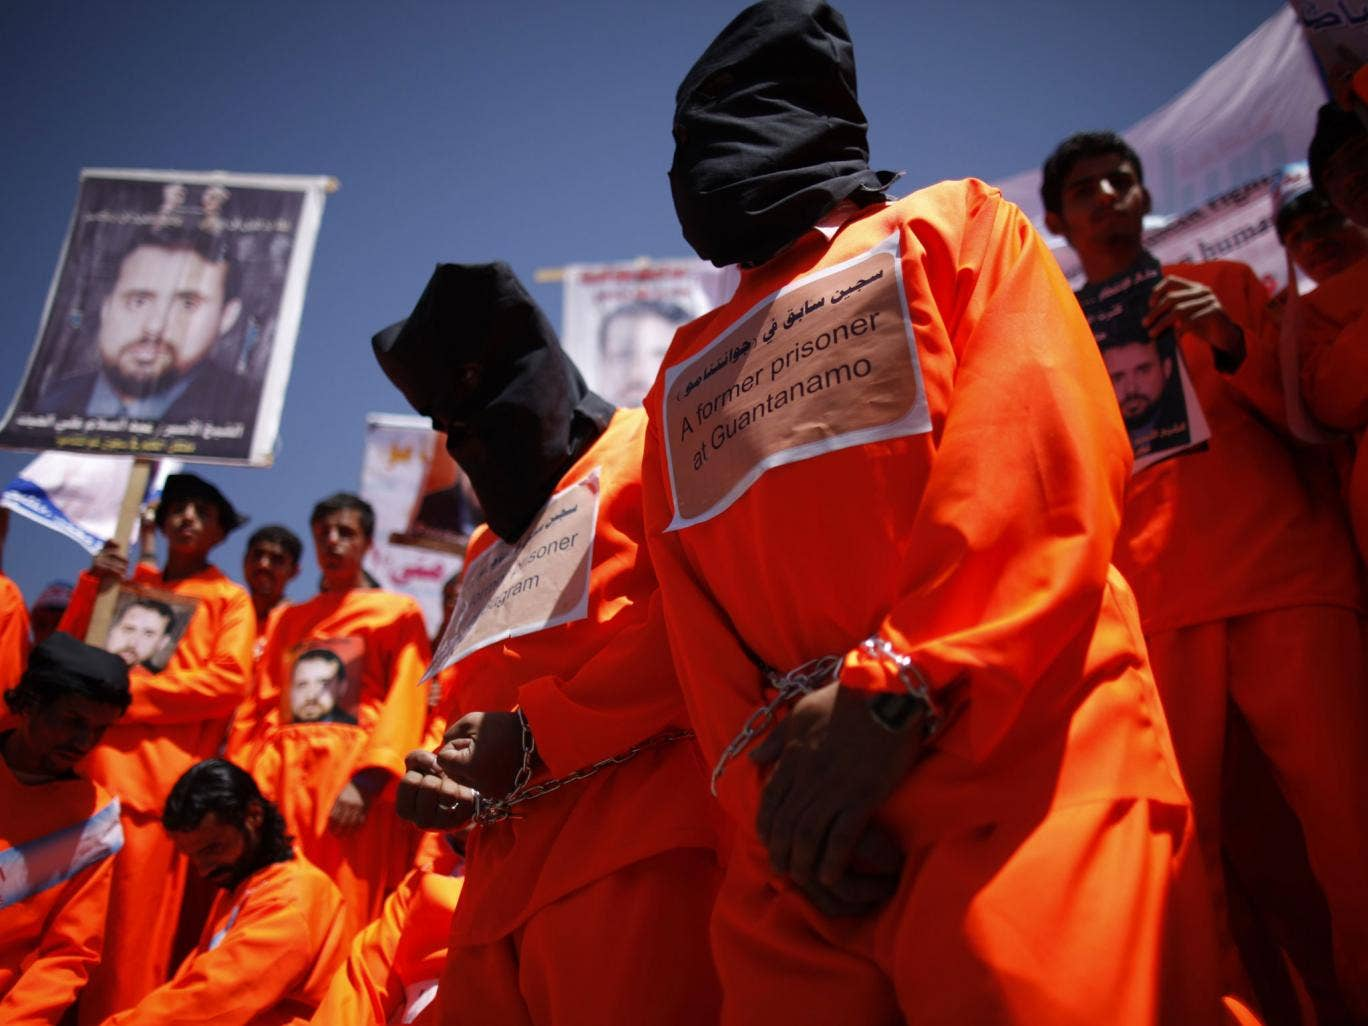 Former Guantanamo Bay detainees wear black hoods during a protest